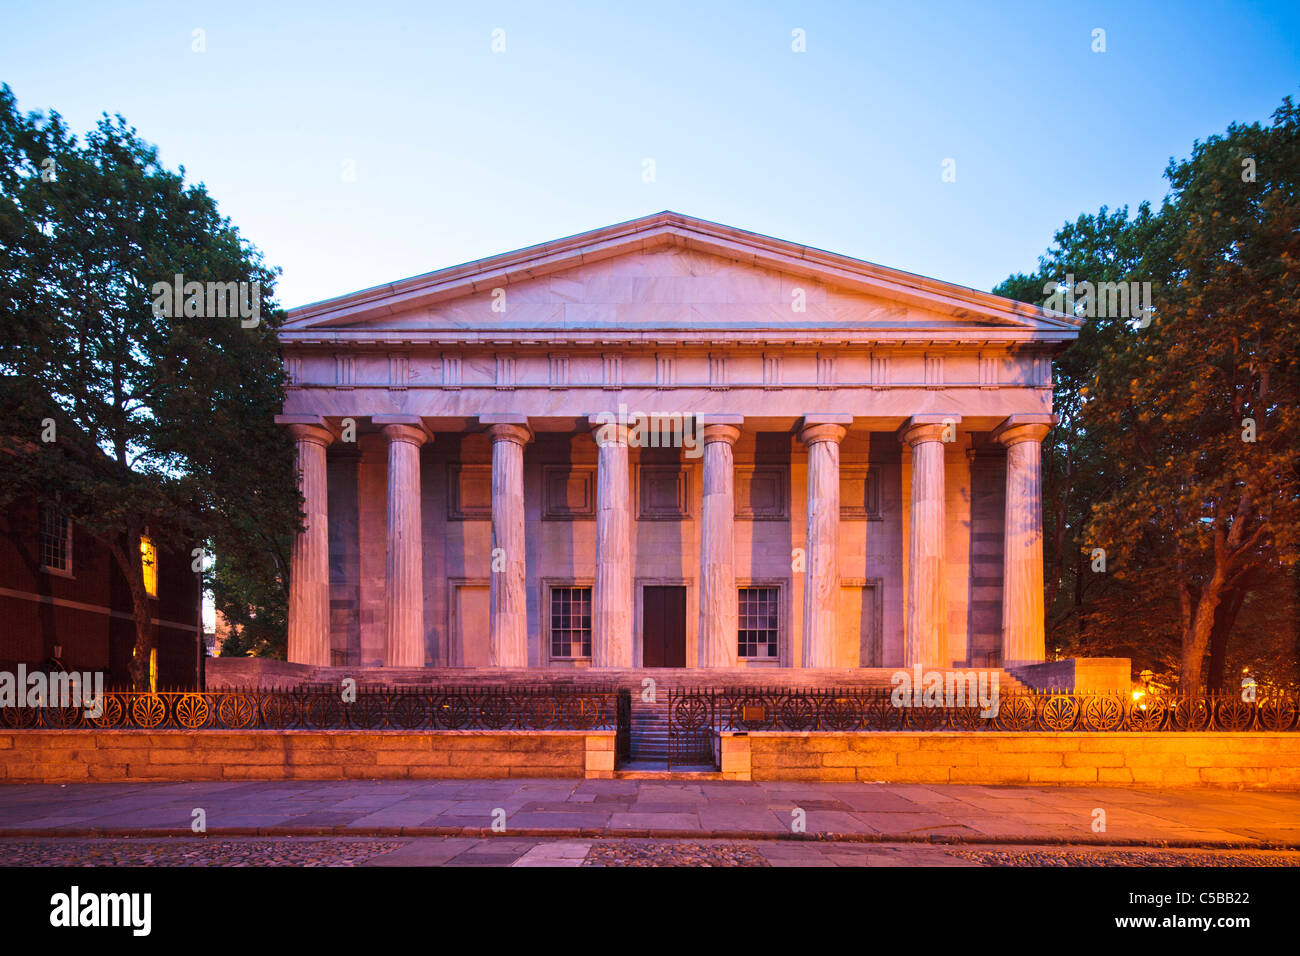 Second Bank of US, Philadelphia - Stock Image